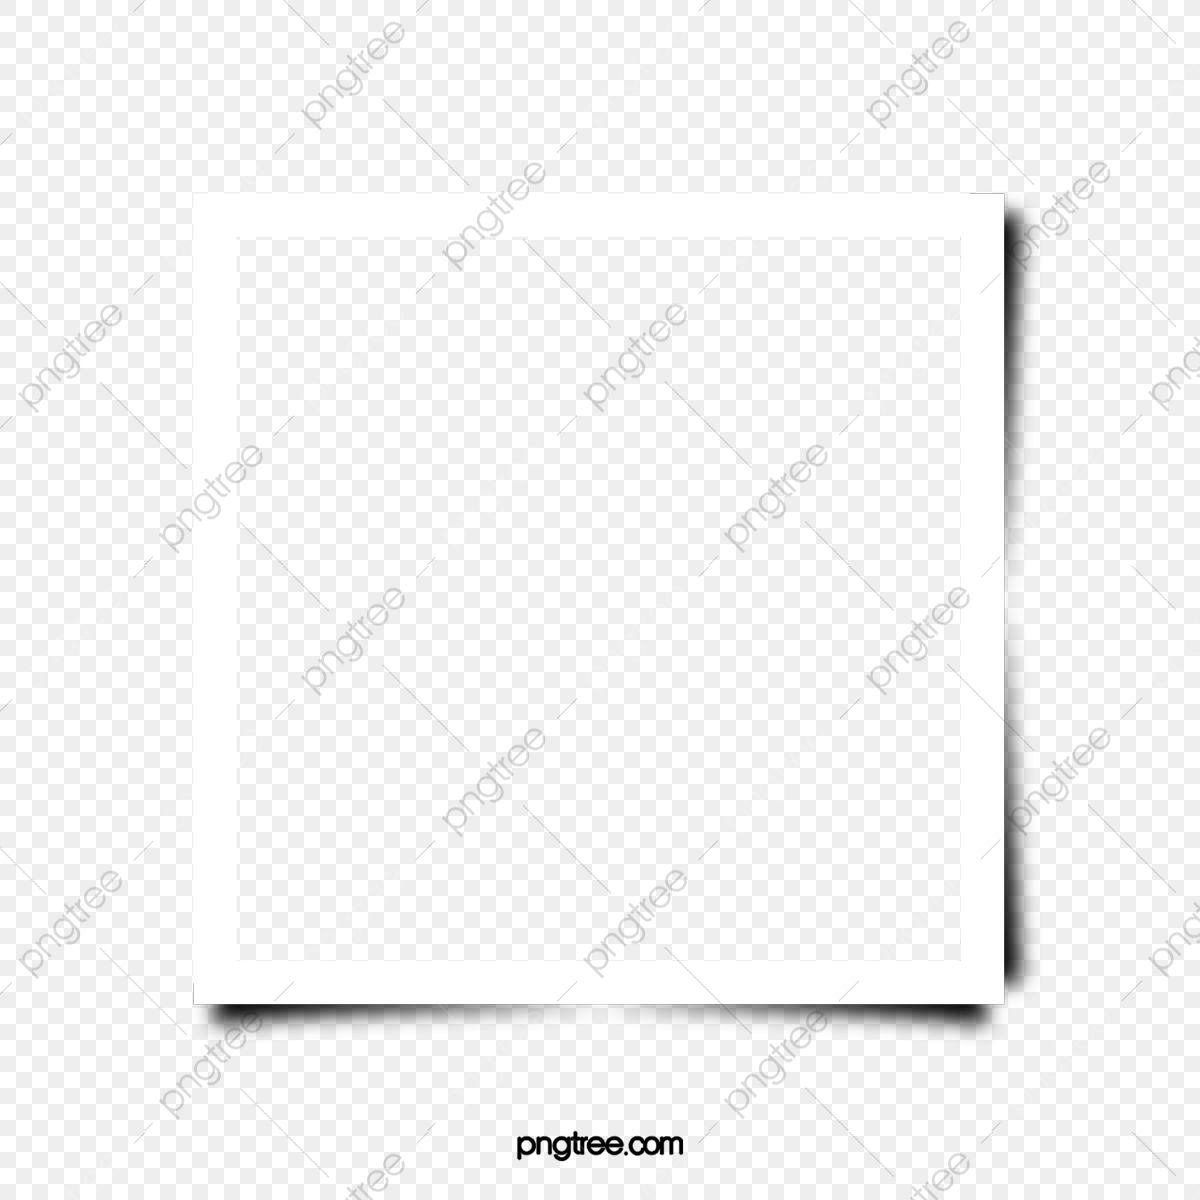 White Square Frame Border Border Clipart Frame Frame Picture Png Transparent Clipart Image And Psd File For Free Download White Square Frame Frame Clipart Painted Picture Frames